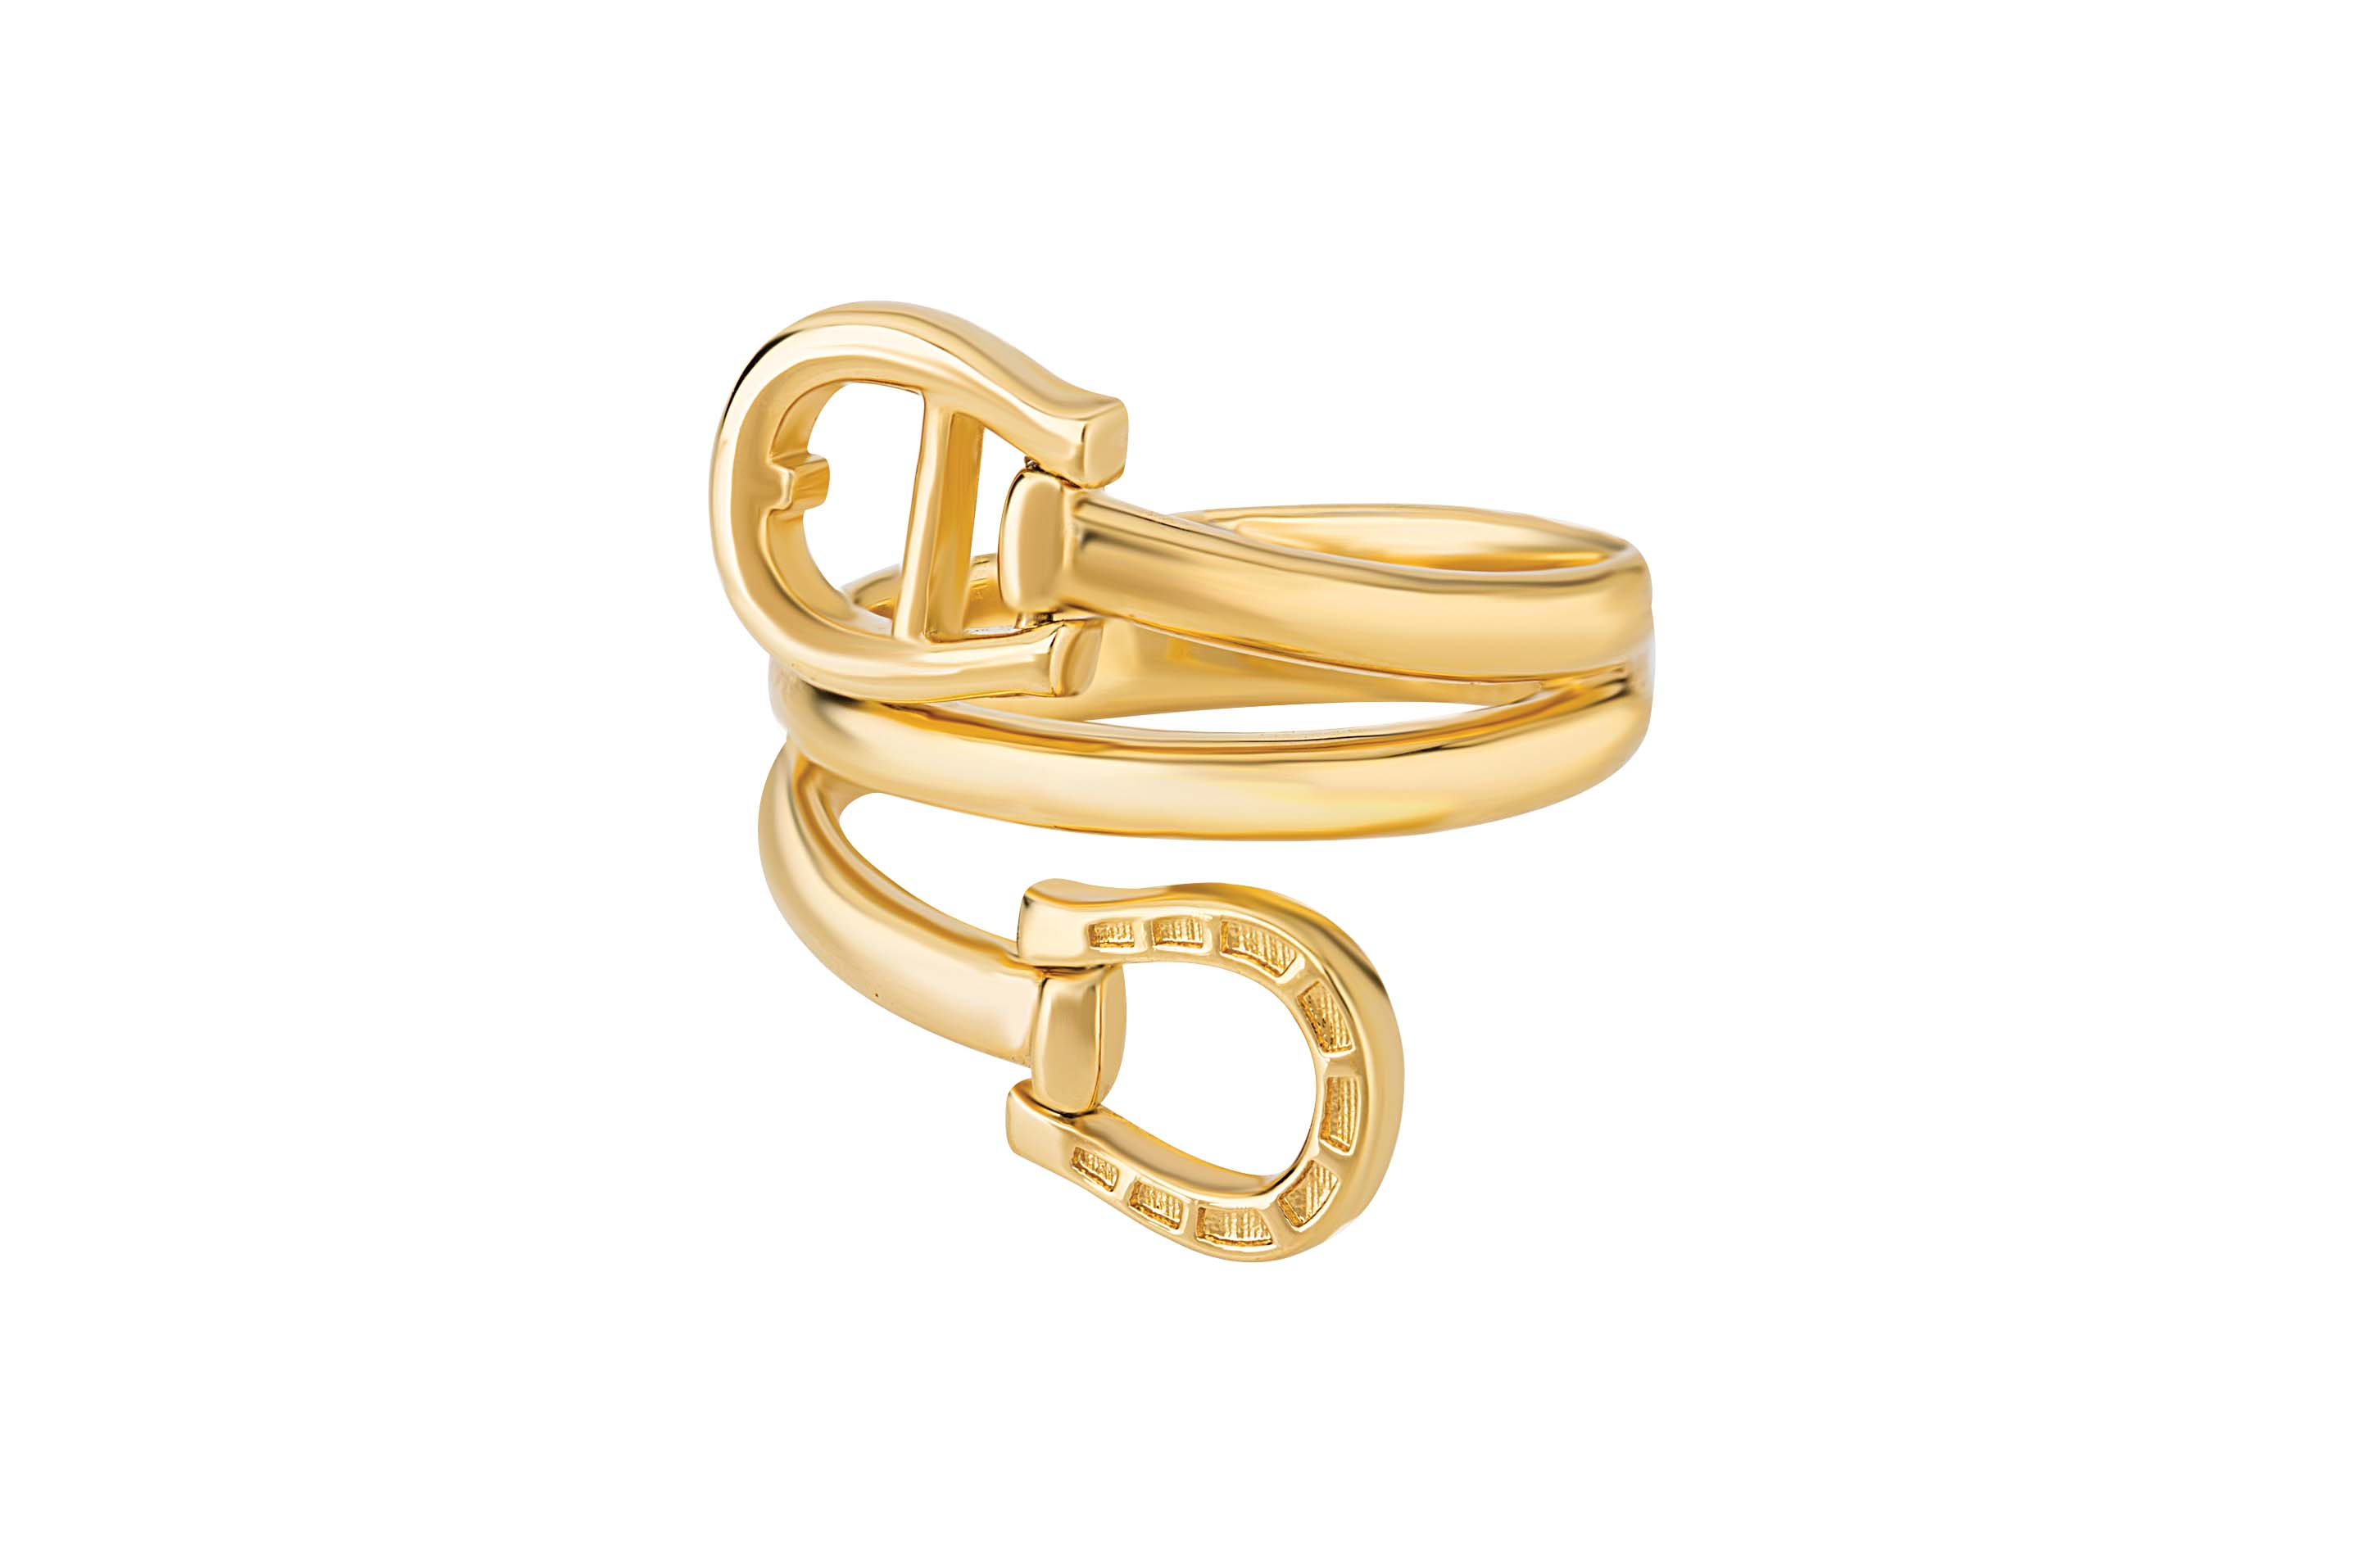 Aigner Ring, Aigner Jewelry